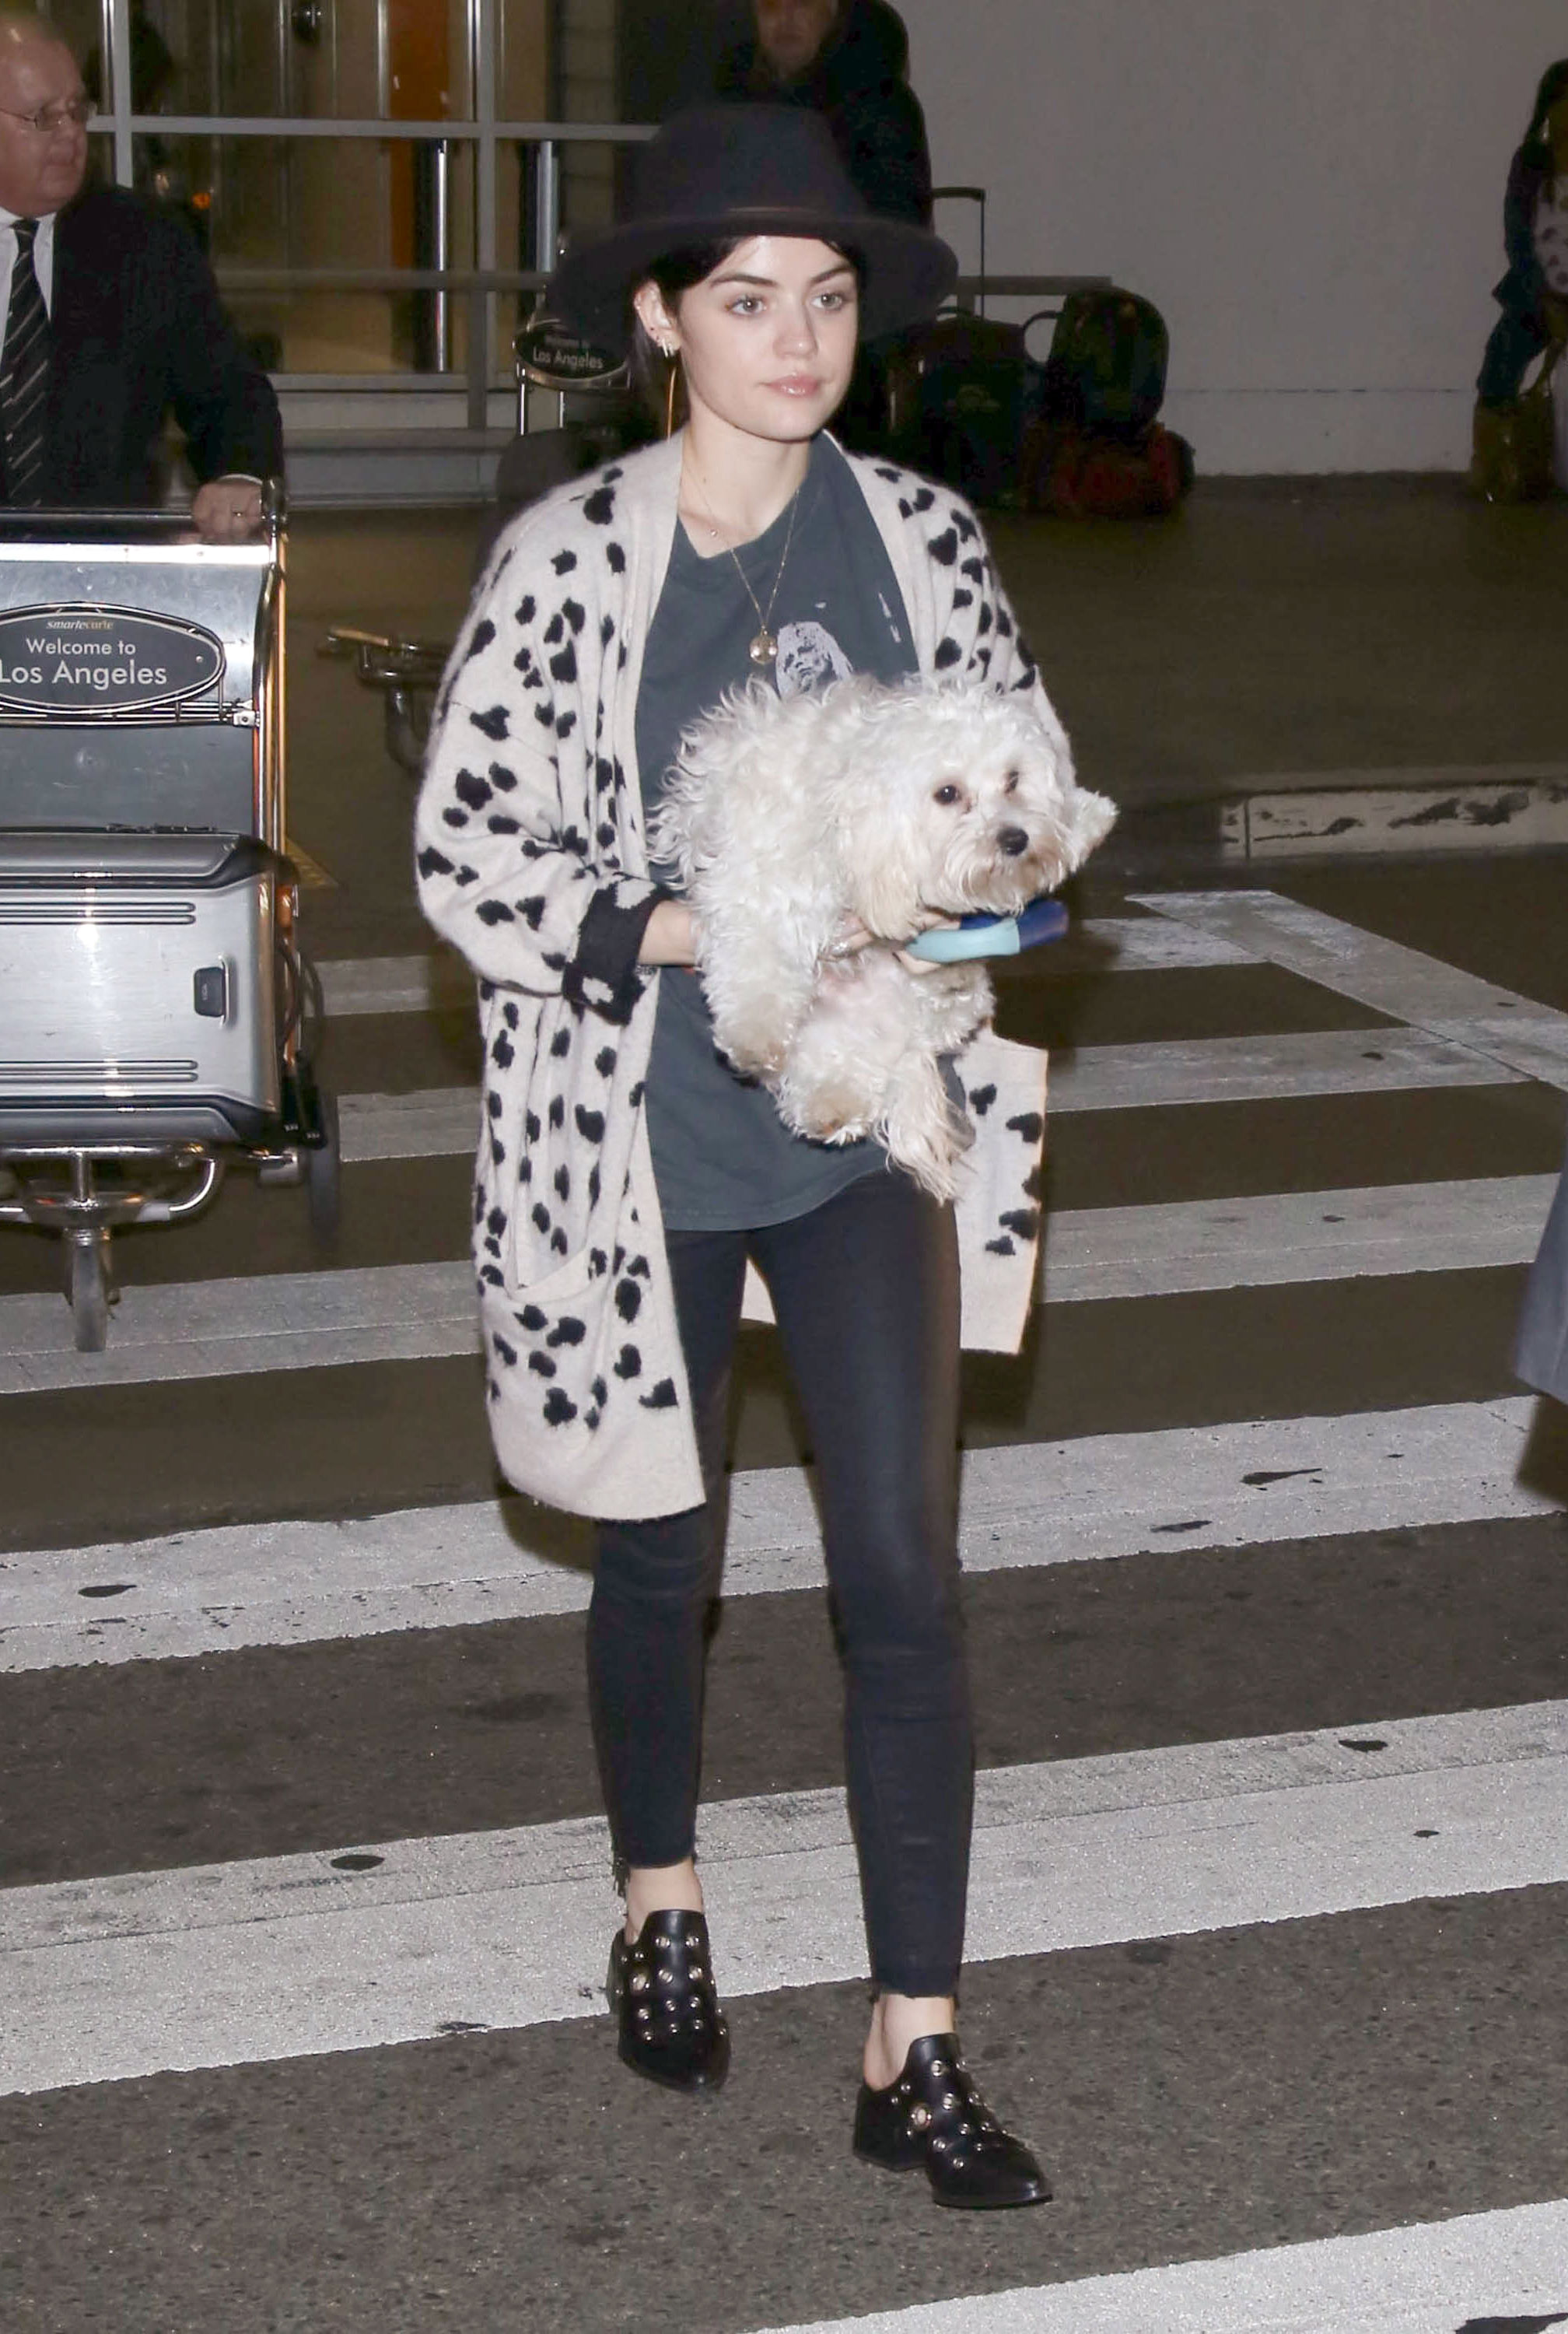 Lucy Hale gives us a chic and edgy outfit idea featuring a leopard cardigan and grommet embellished mules.